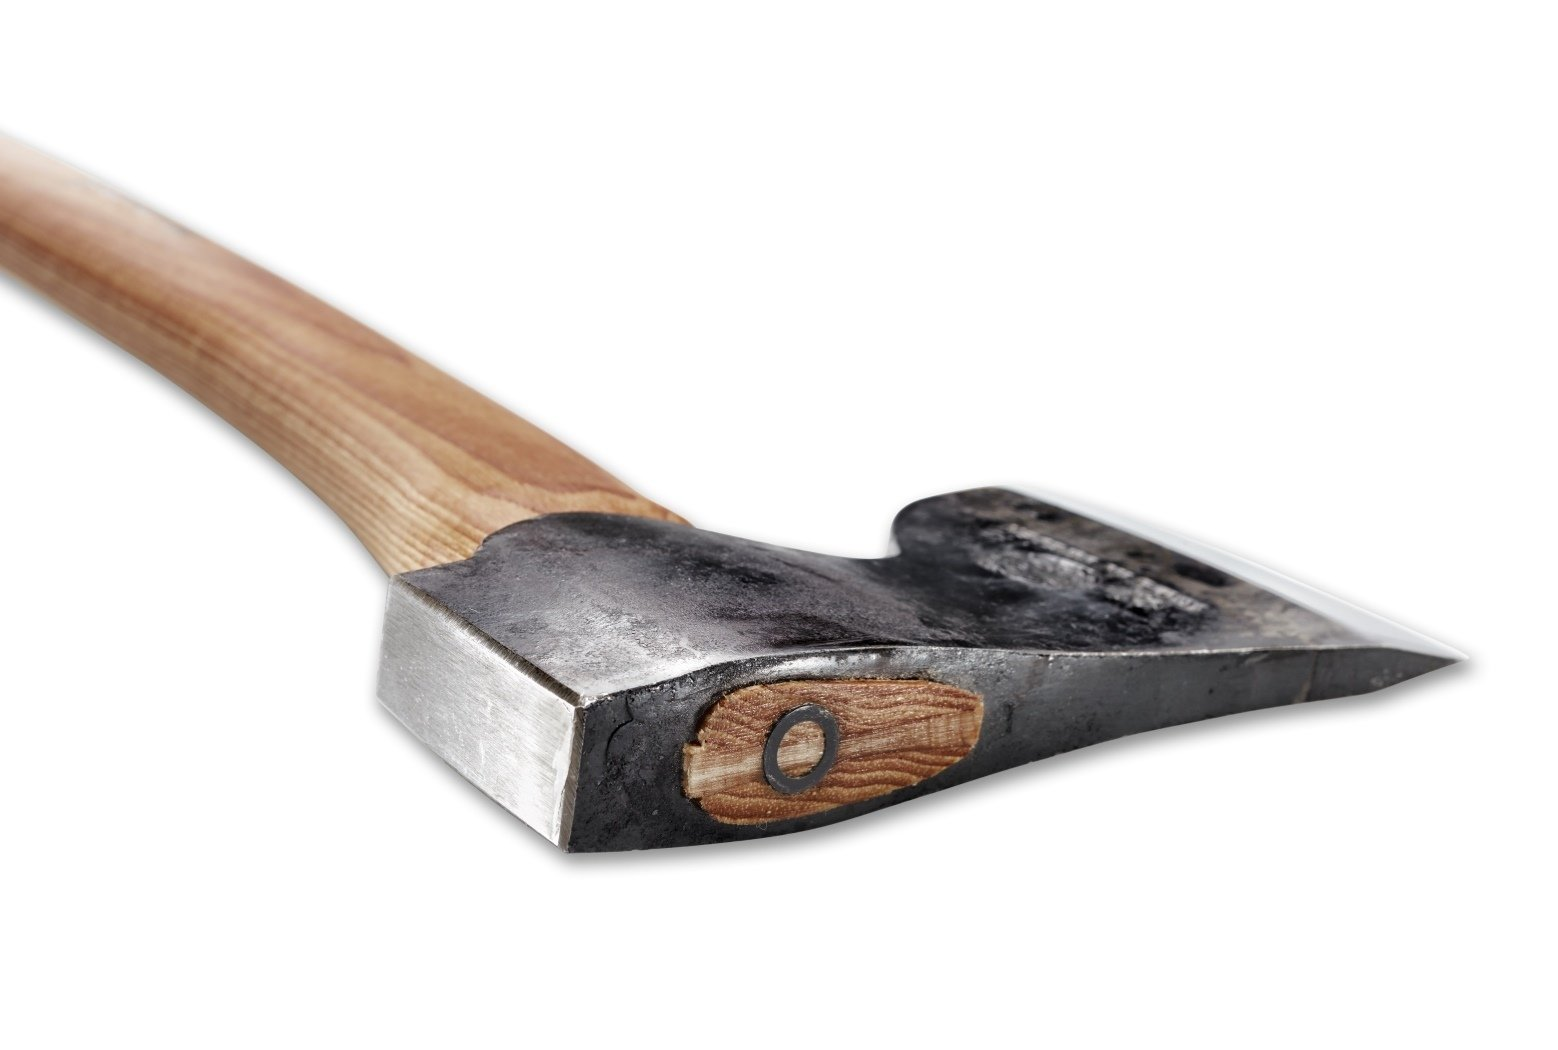 Åby Forest Axe, 700 g